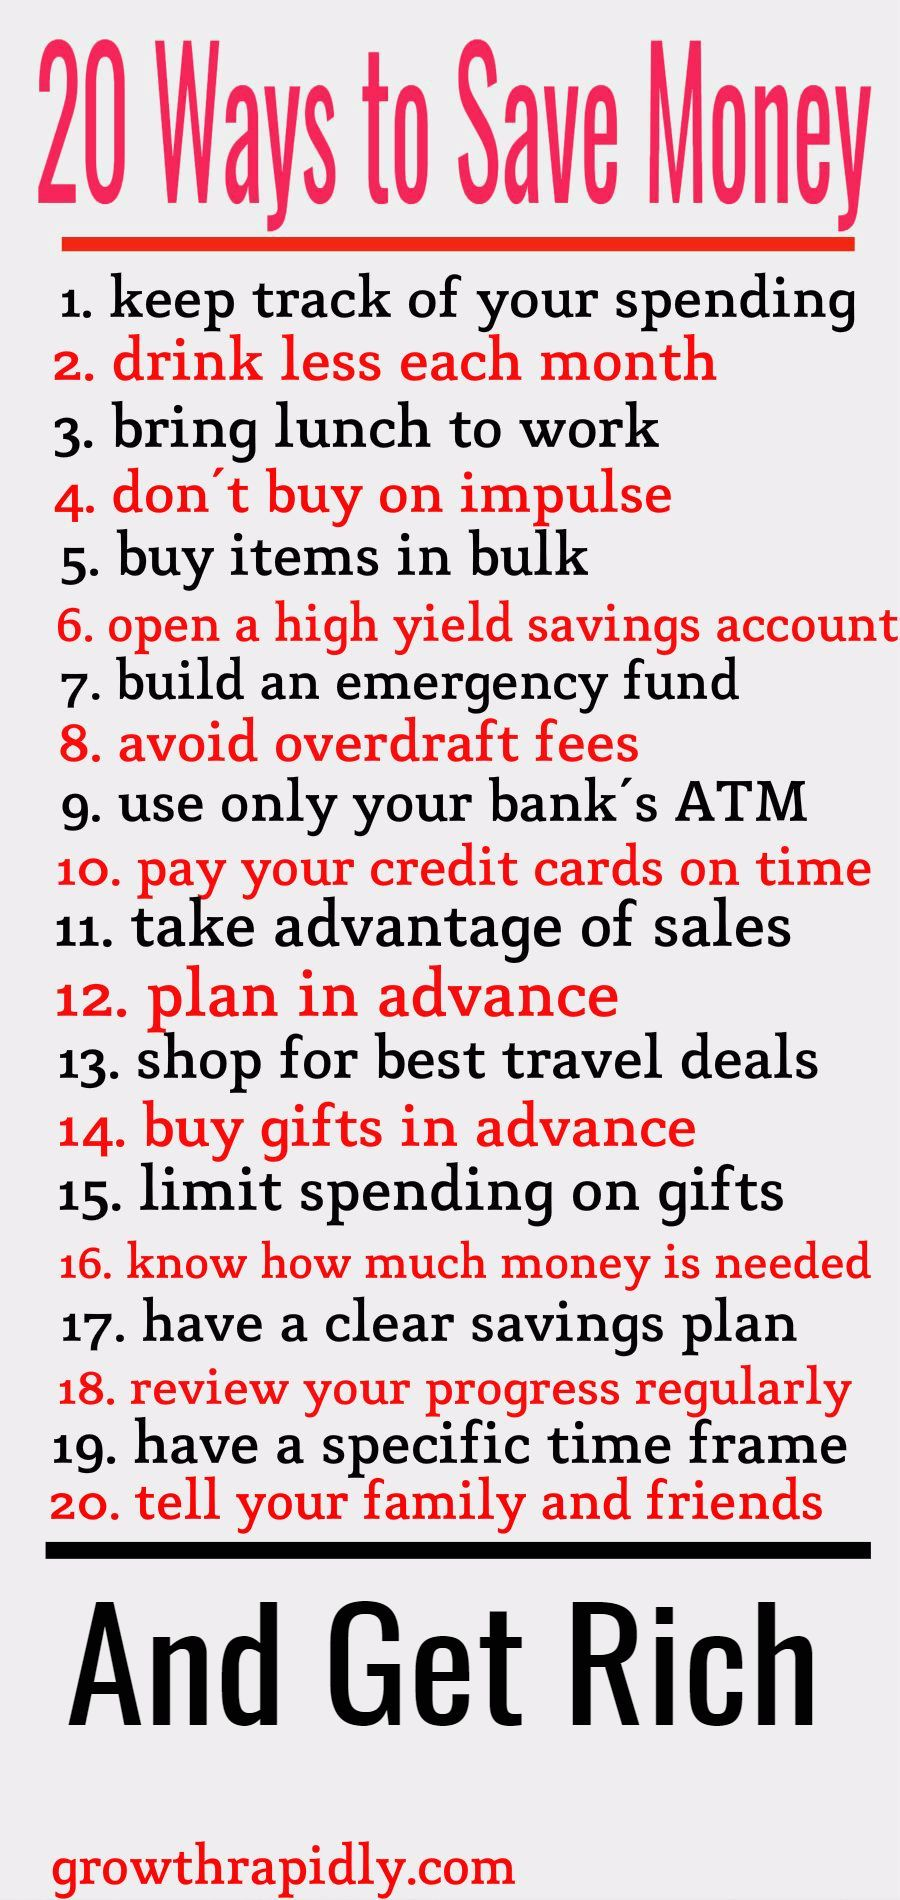 20 Smart Ways to Save Your Money - GrowthRapidly